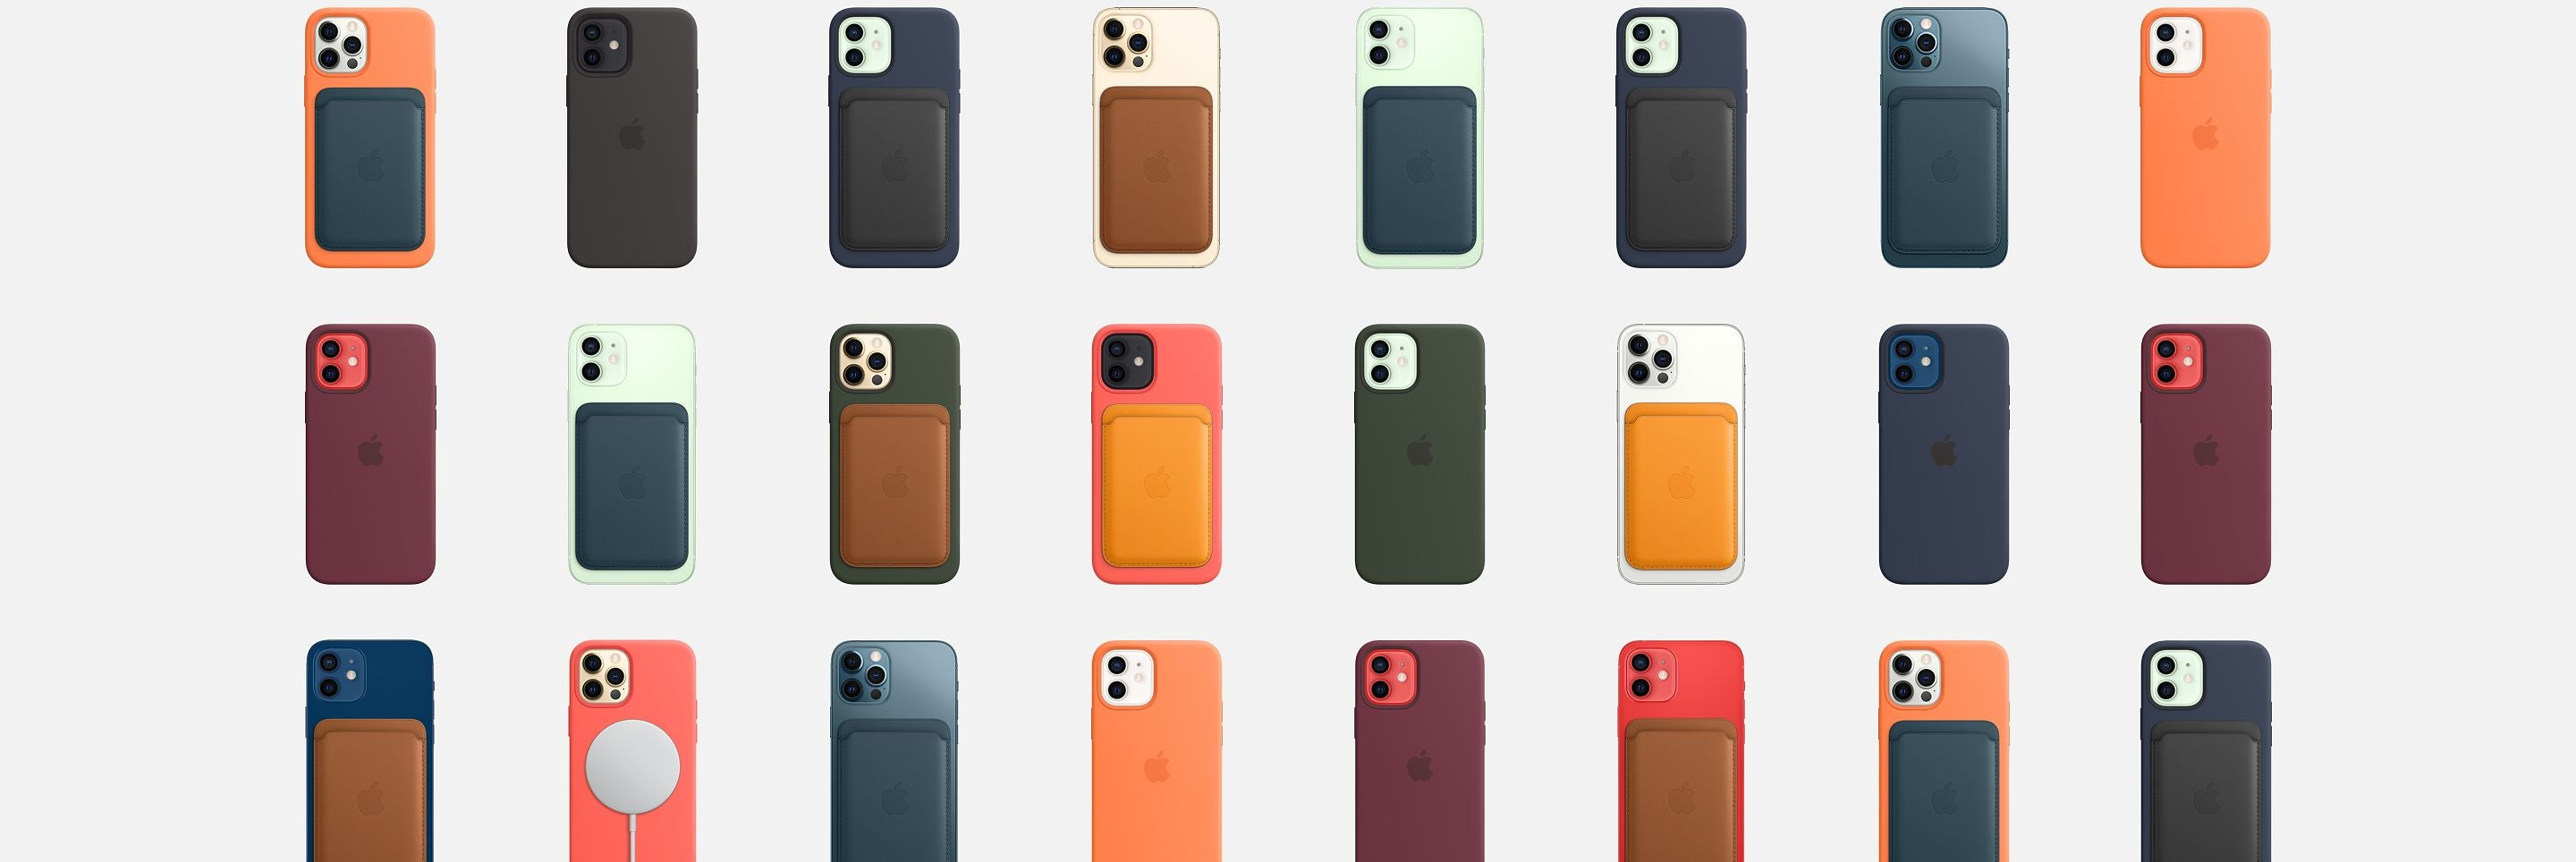 iPhone 12 - cover